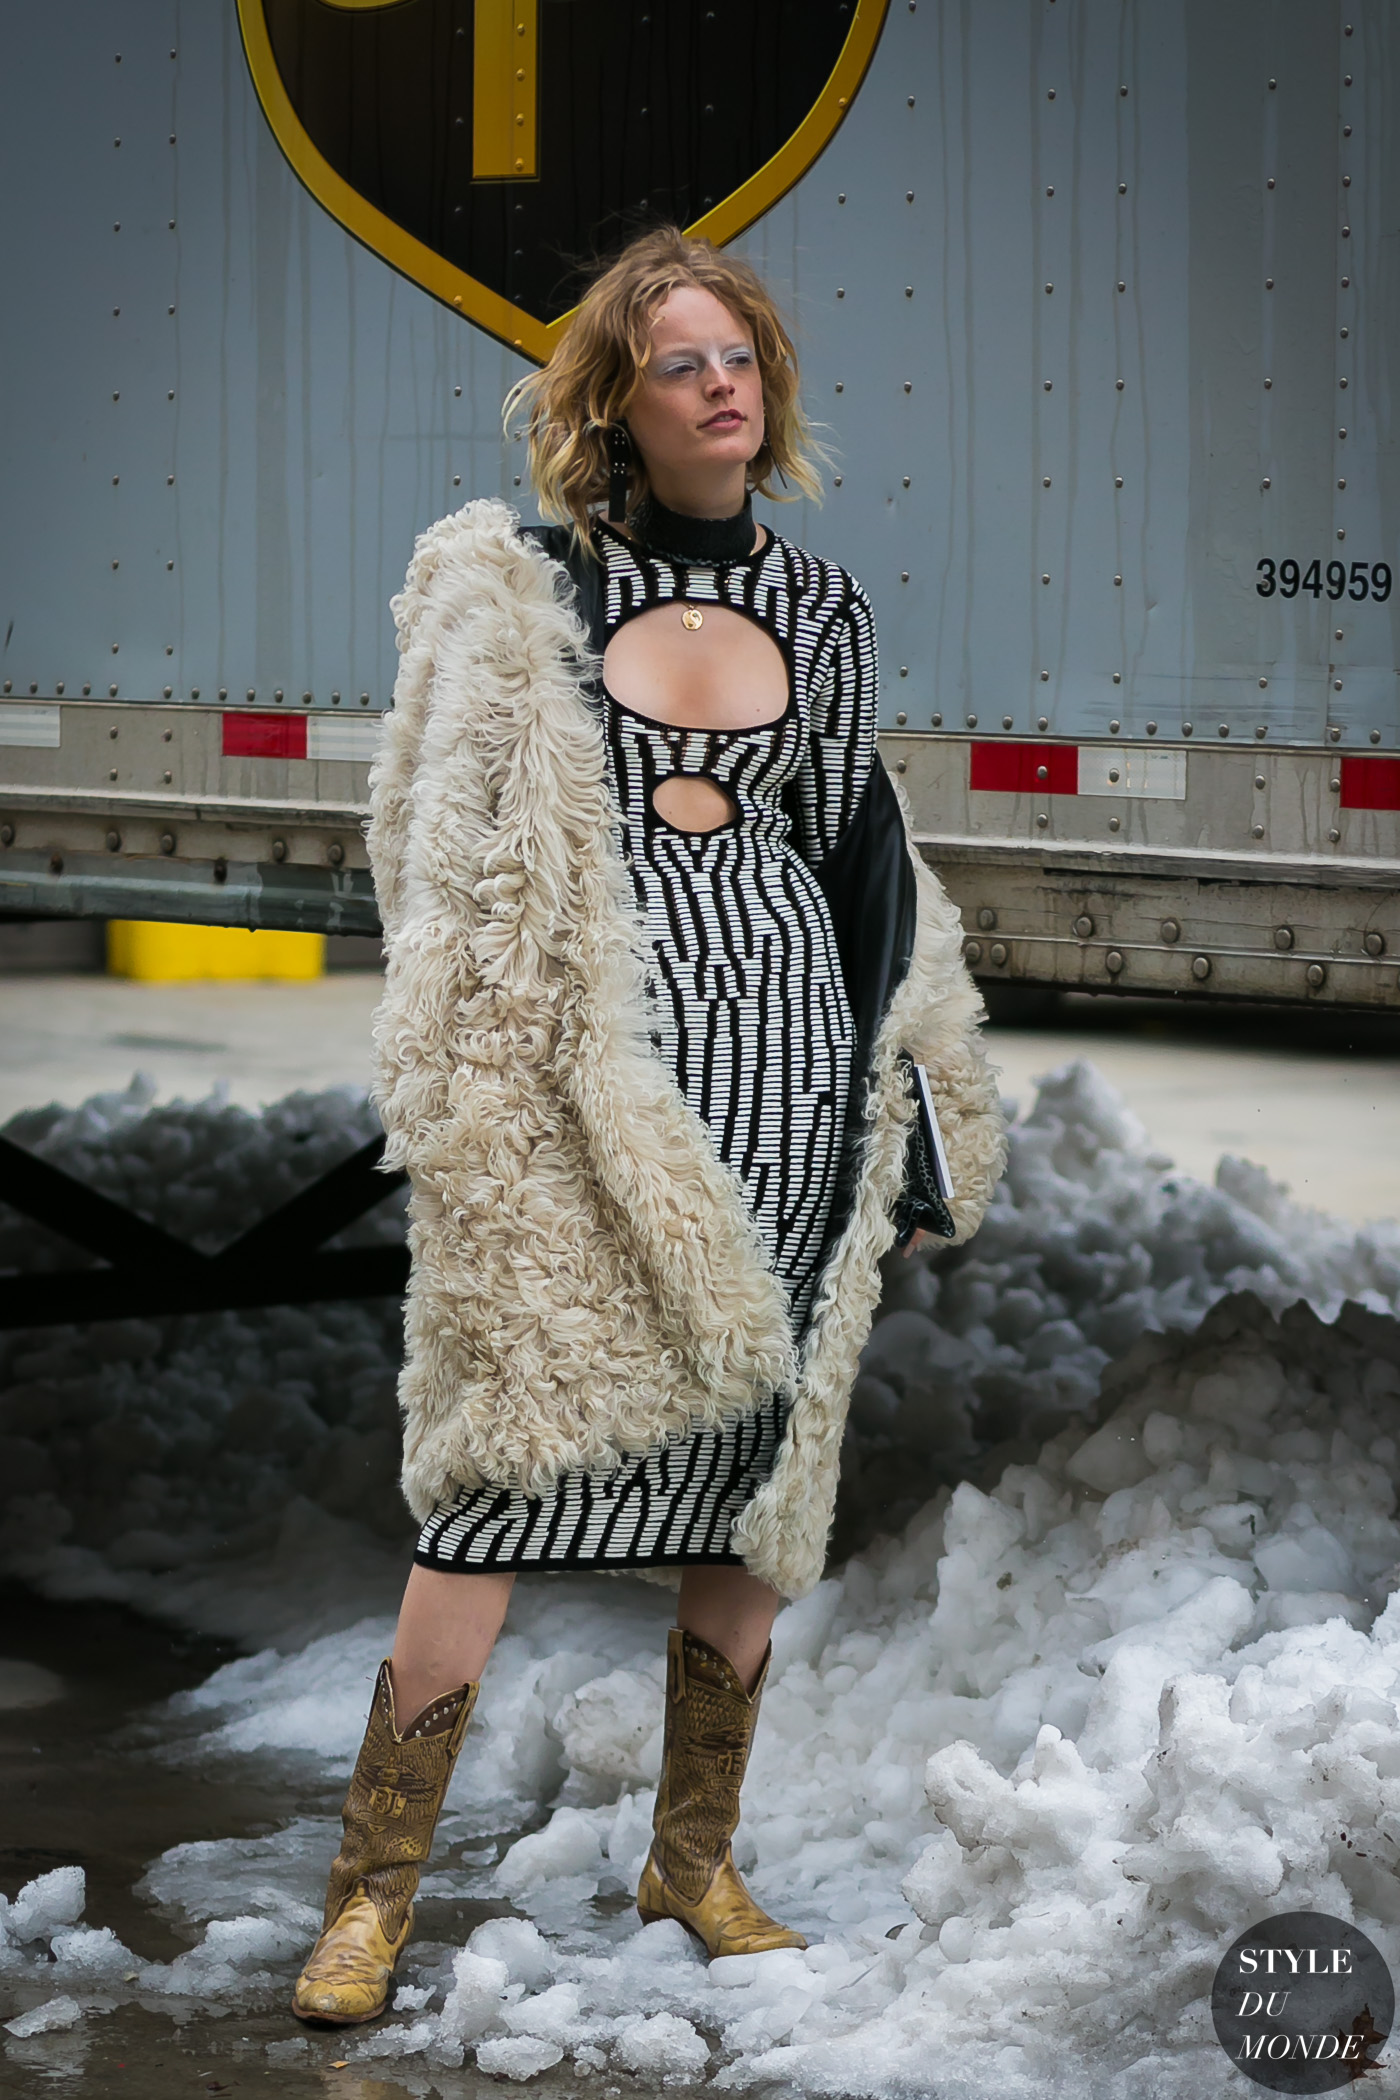 Hanne Gaby Odiele by STYLEDUMONDE Street Style Fashion Photography0E2A5813